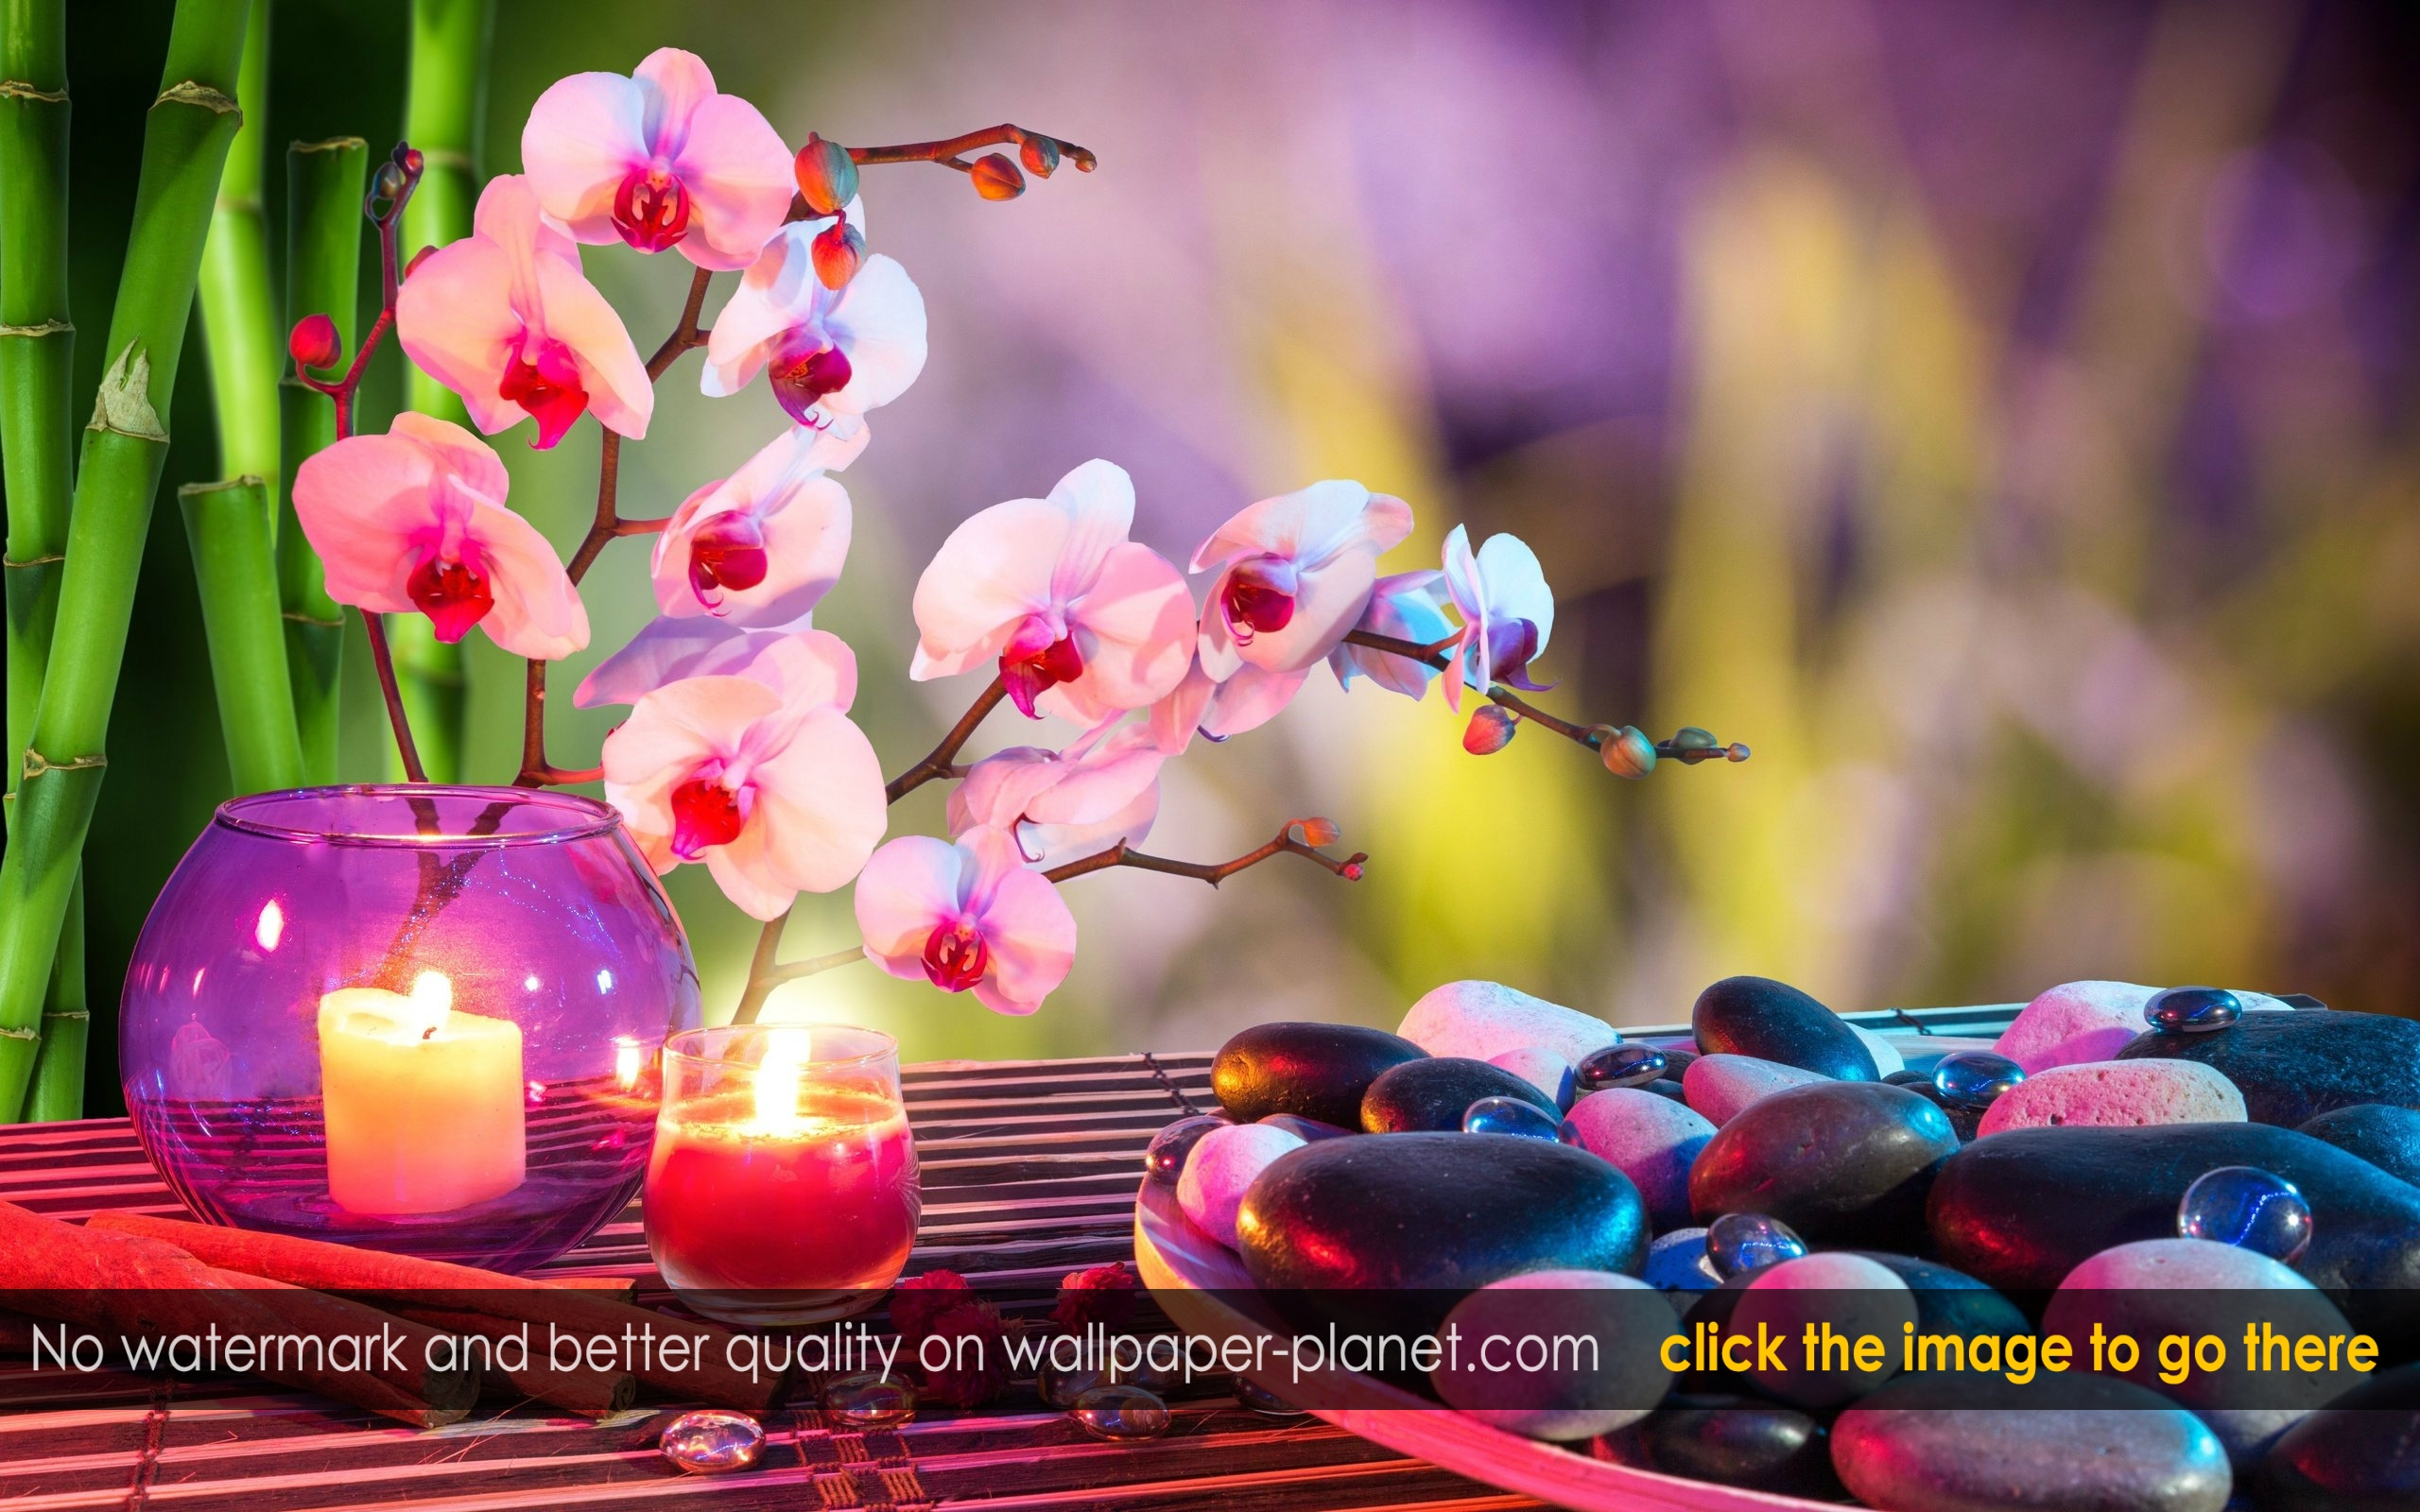 spa stones candles and flowers pic mch0103102